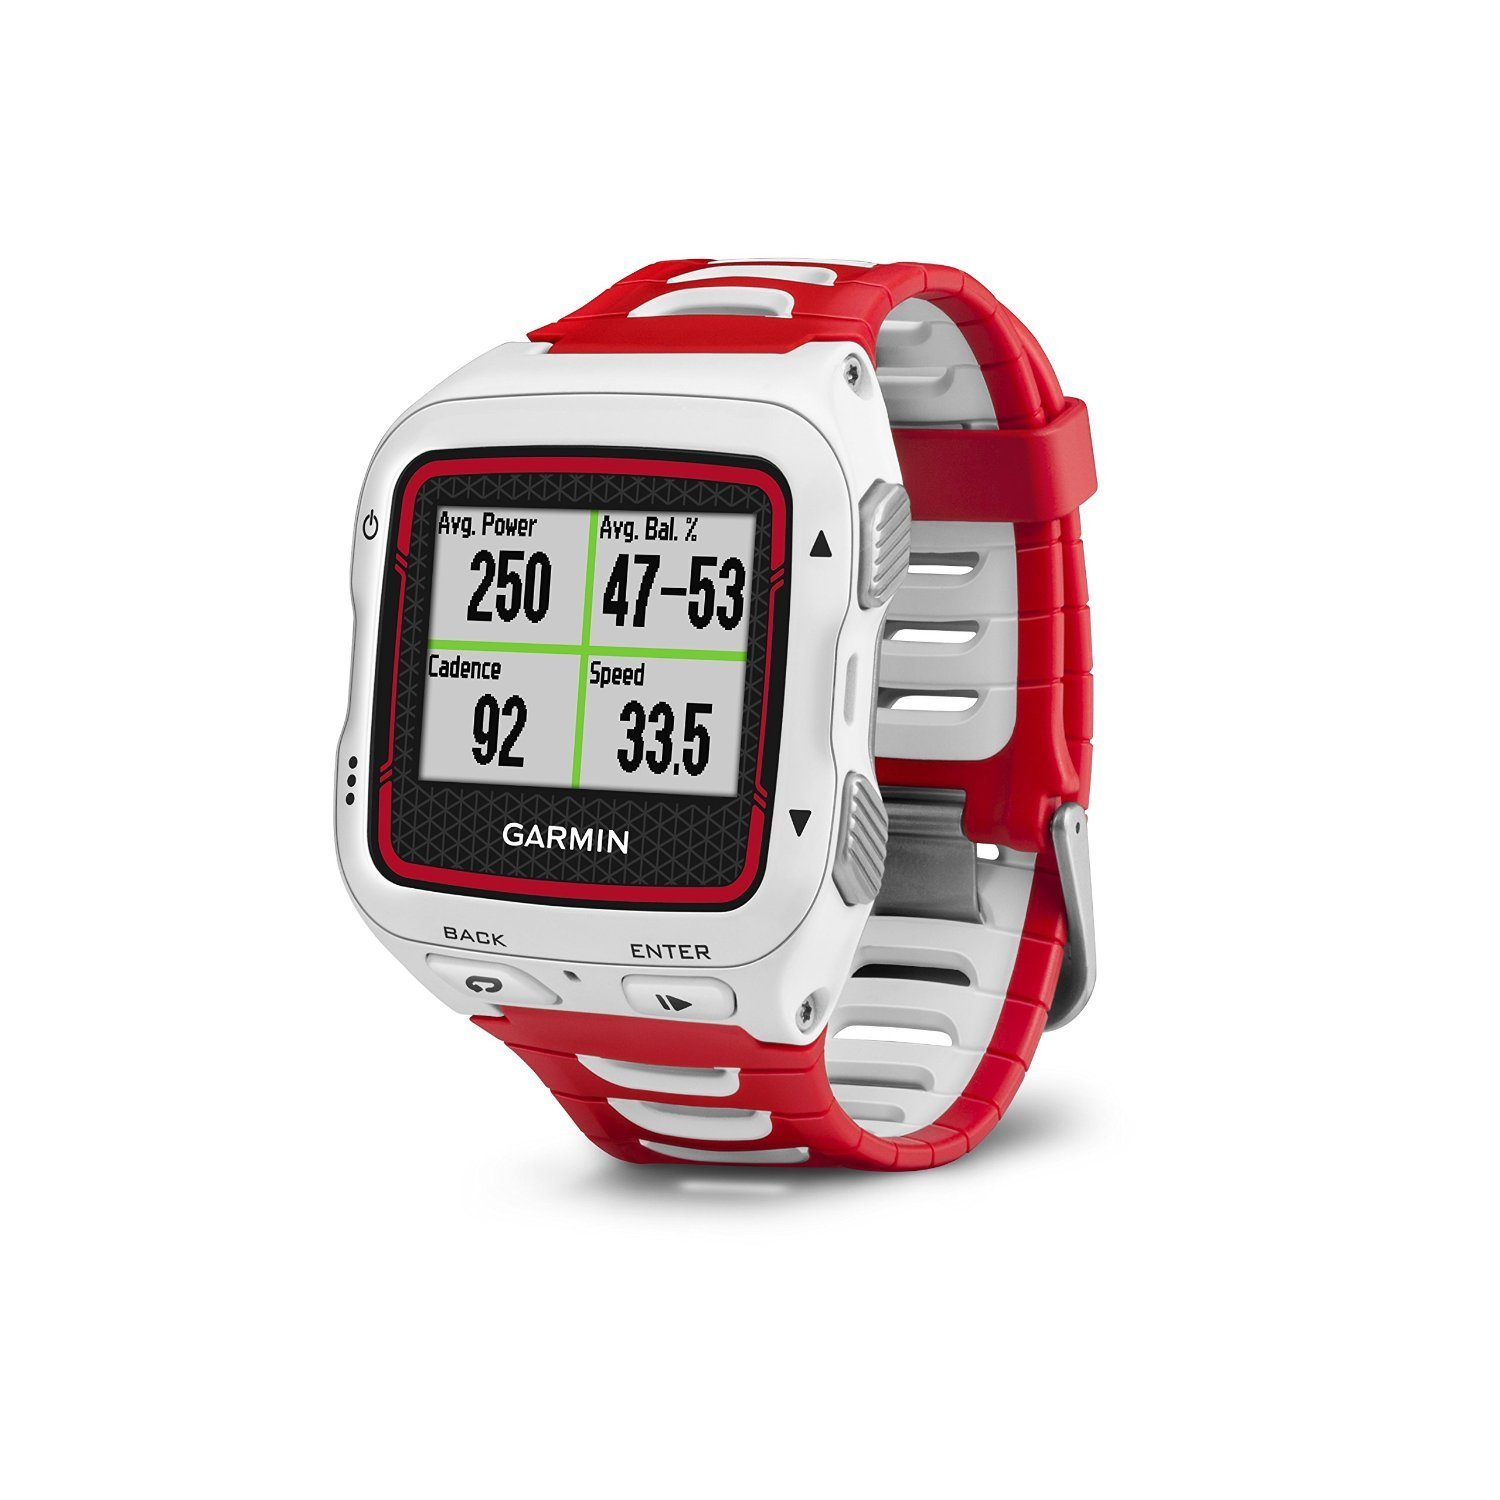 Garmin Forerunner 920XT White/Red GPS Sports Watch (Certified Refurbished)